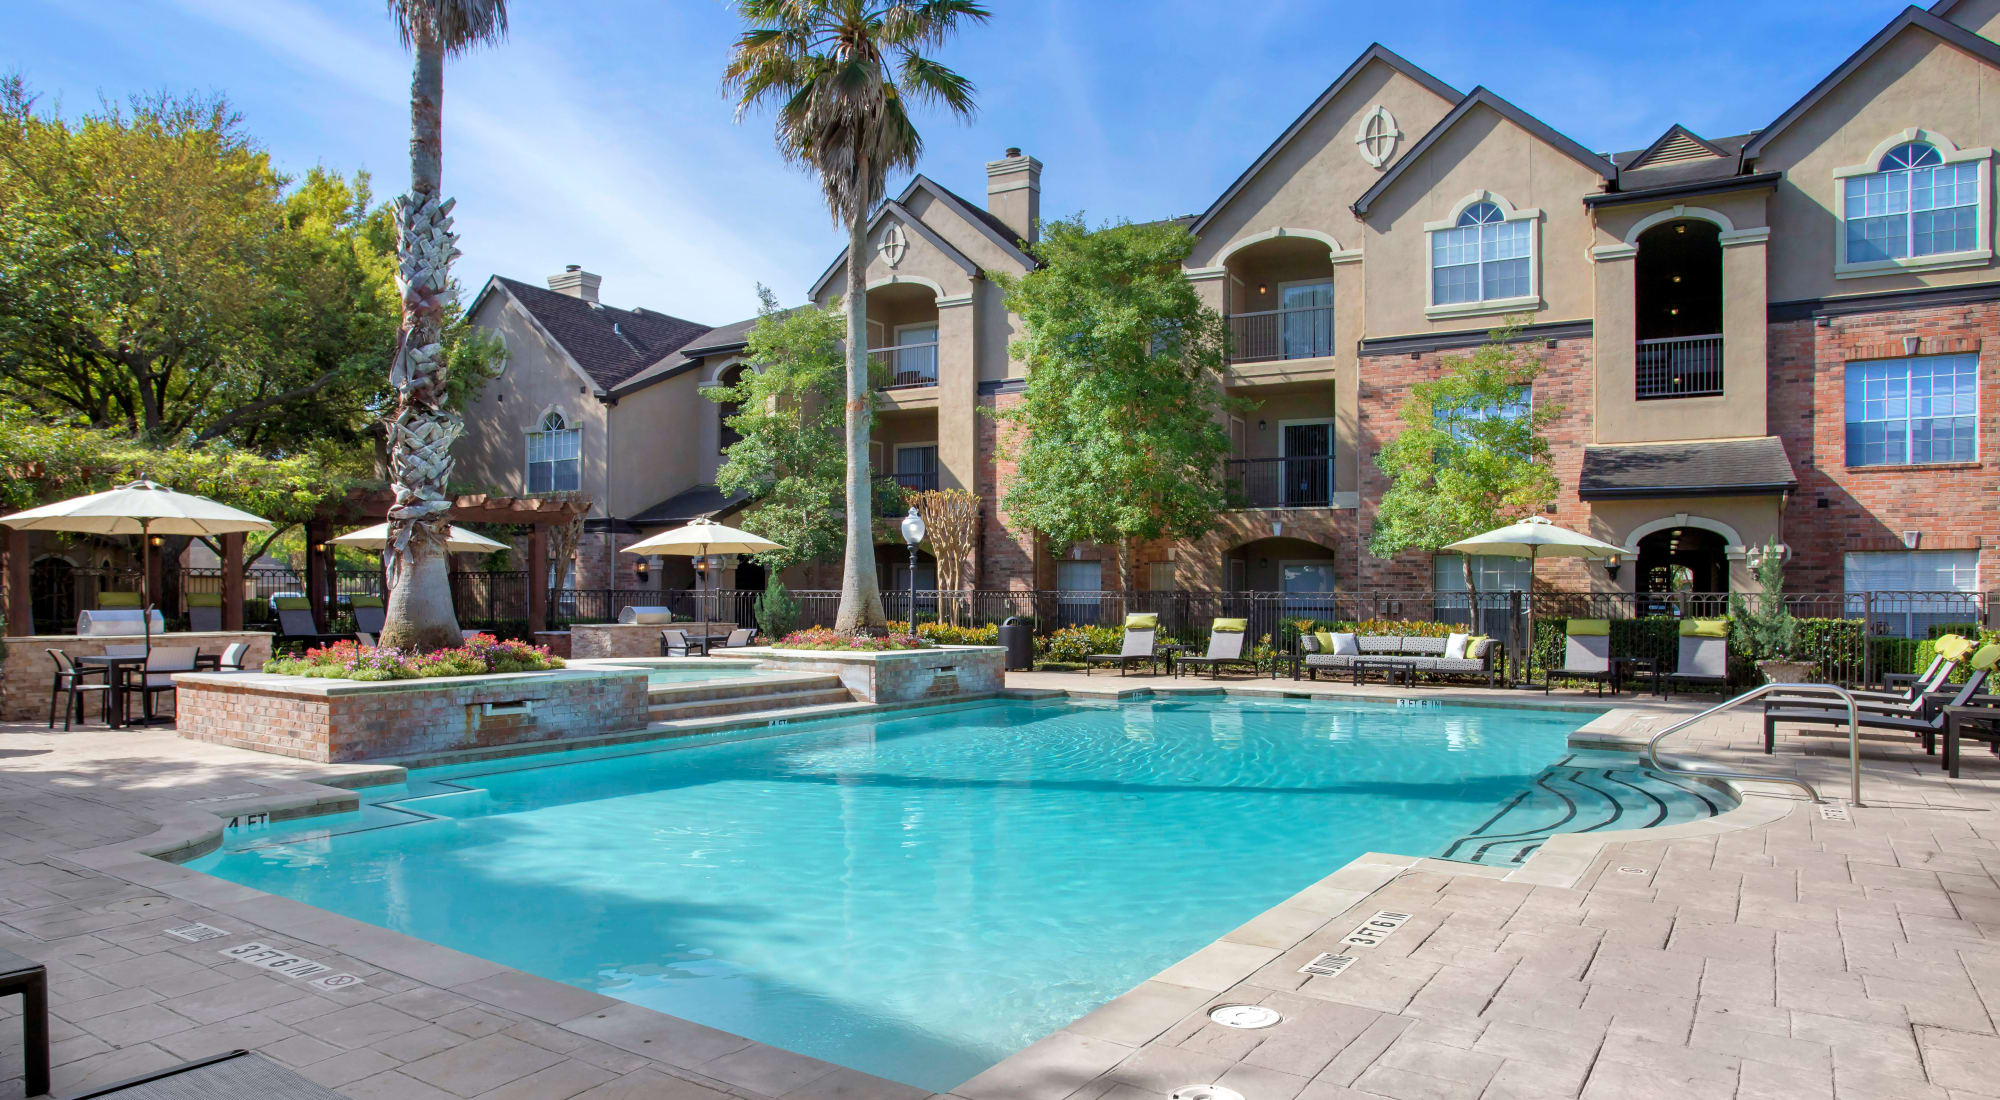 Amenities at Regency at First Colony in Sugar Land, Texas